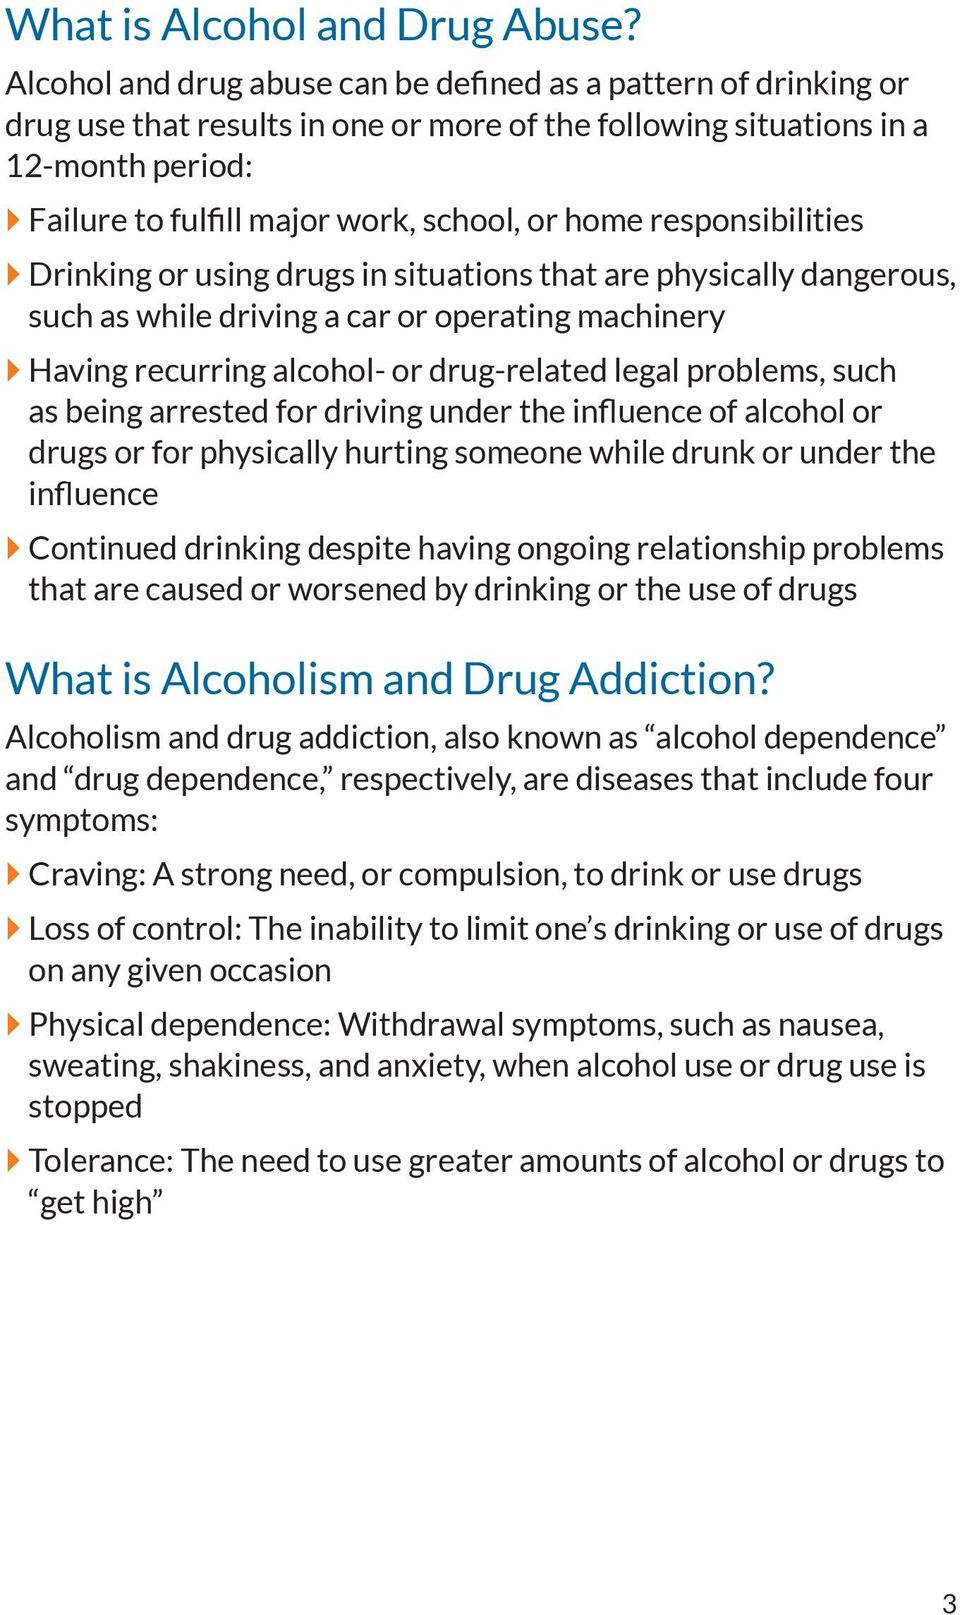 home responsibilities } Drinking or using drugs in situations that are physically dangerous, such as while driving a car or operating machinery } Having recurring alcohol- or drug-related legal